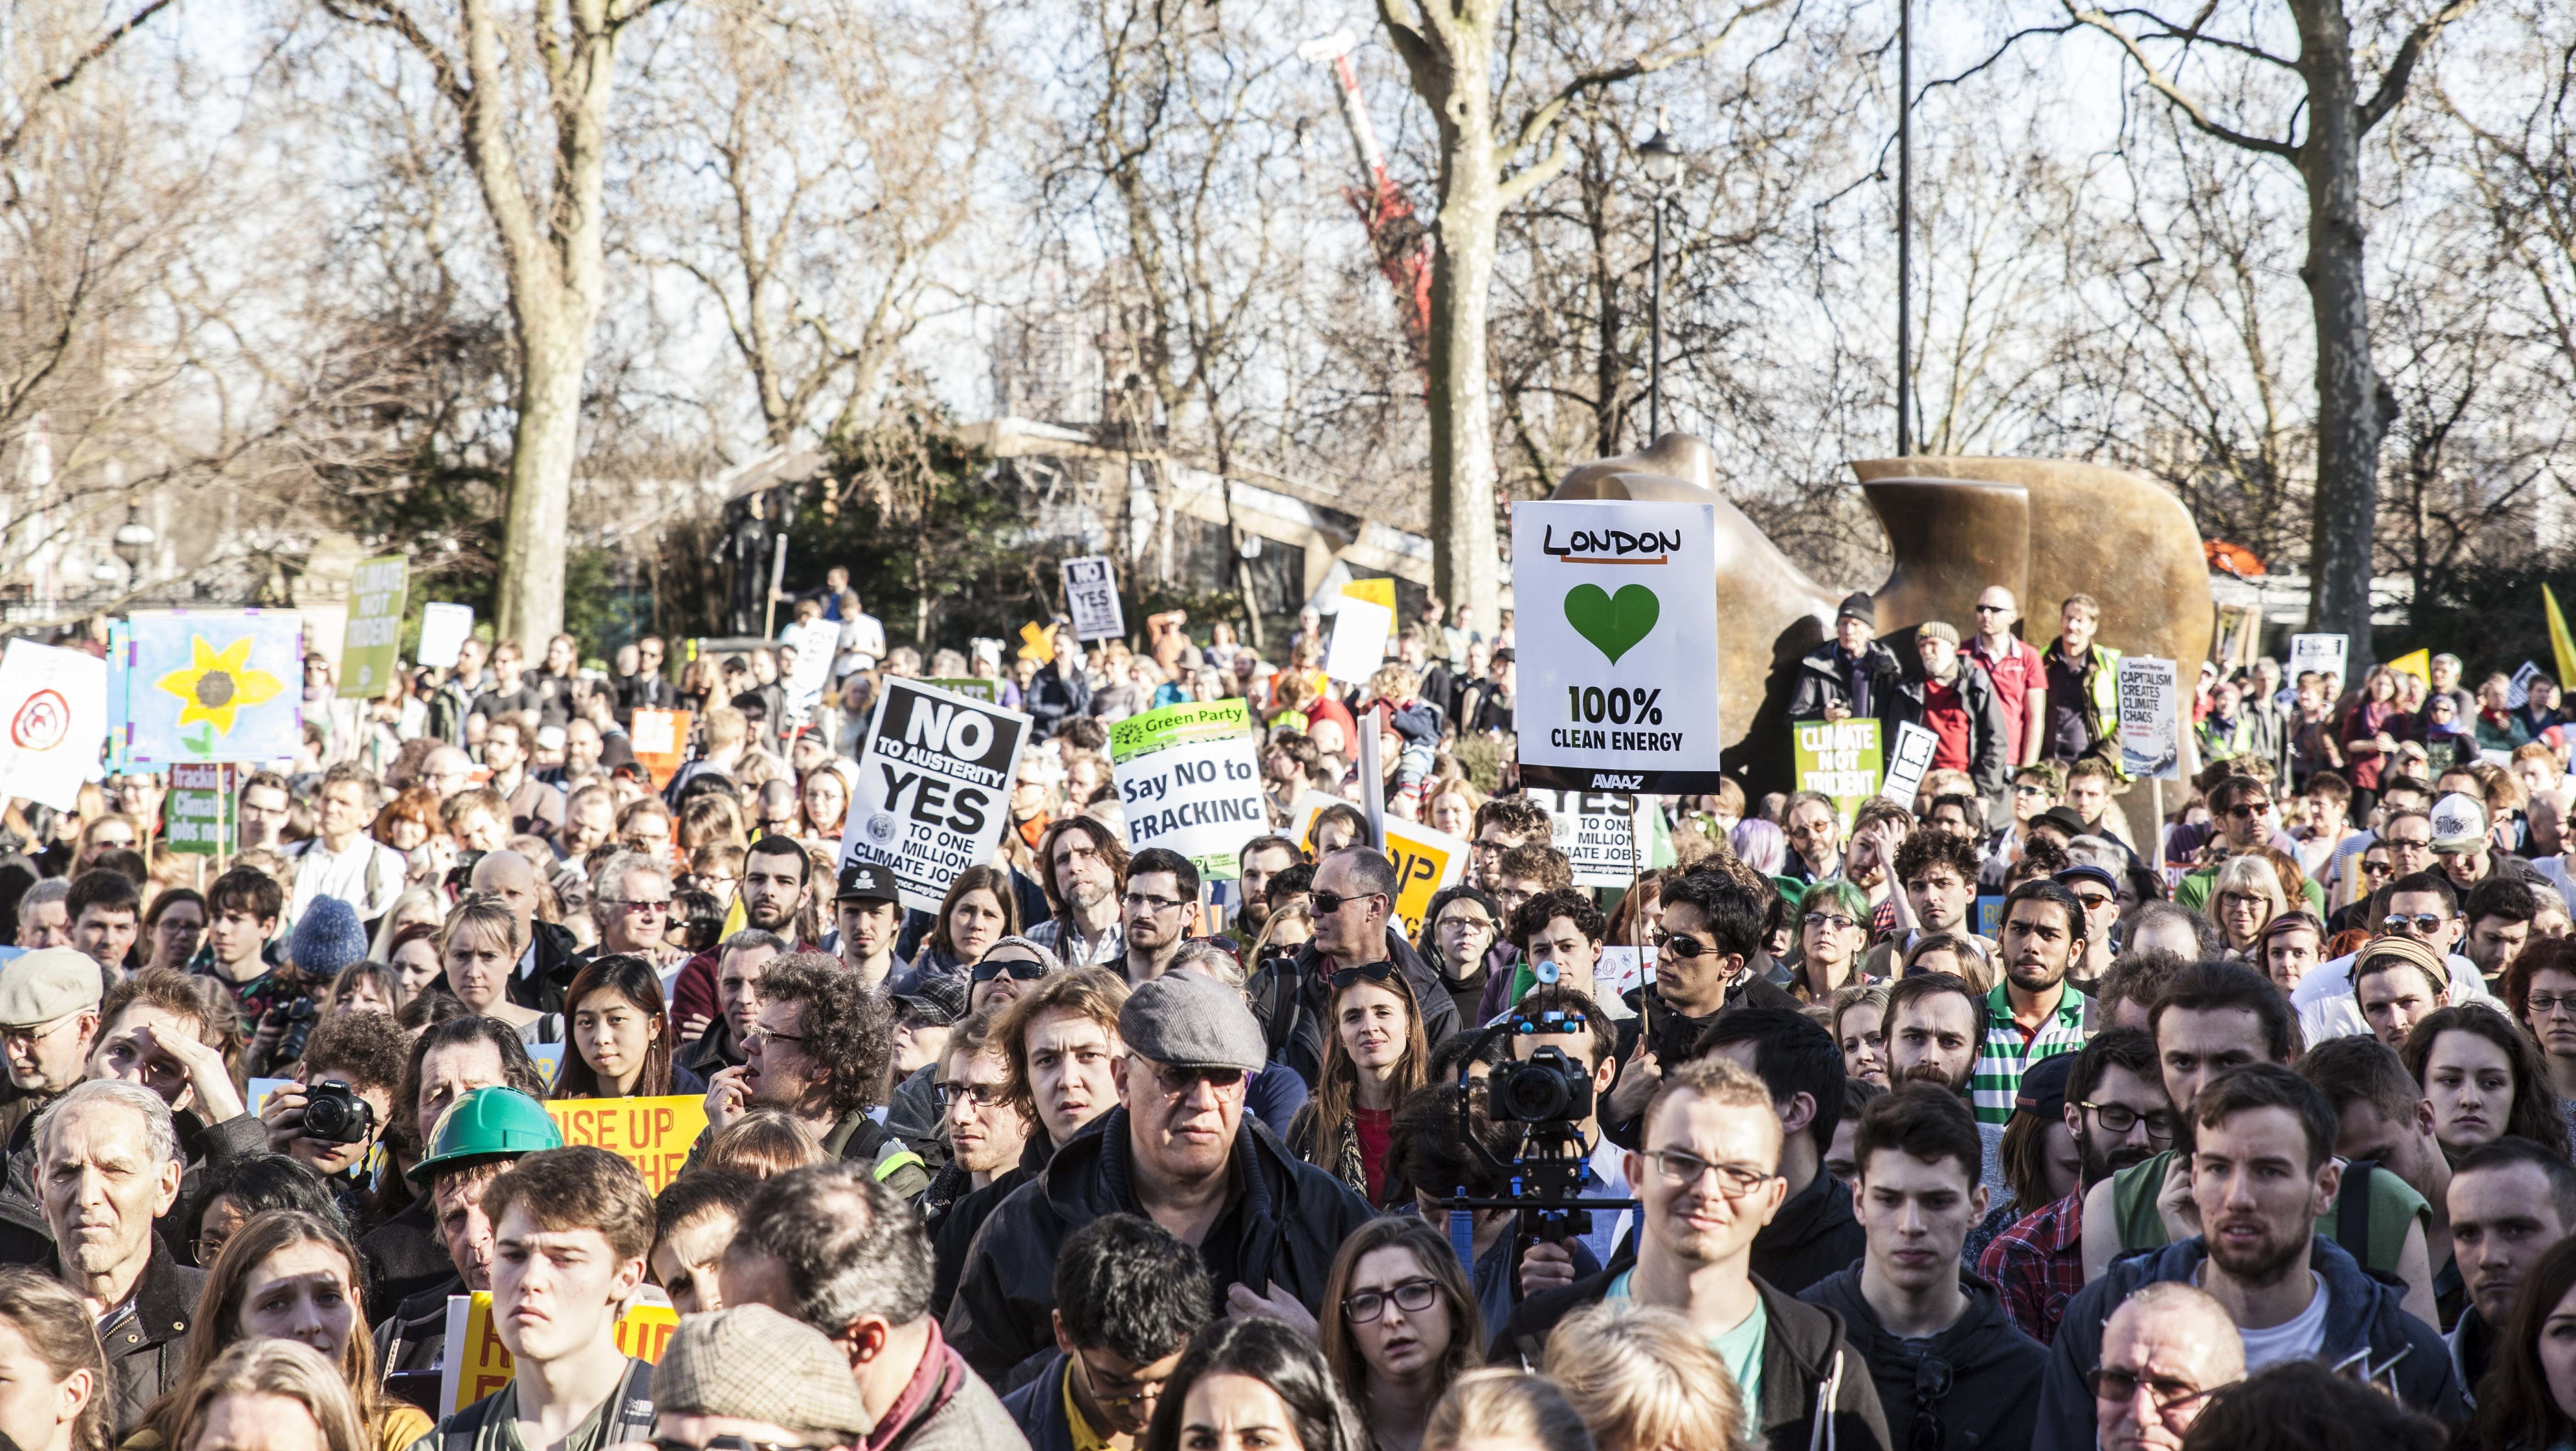 Tens of Thousands Take to the Streets of London Demanding Action on Climate Change